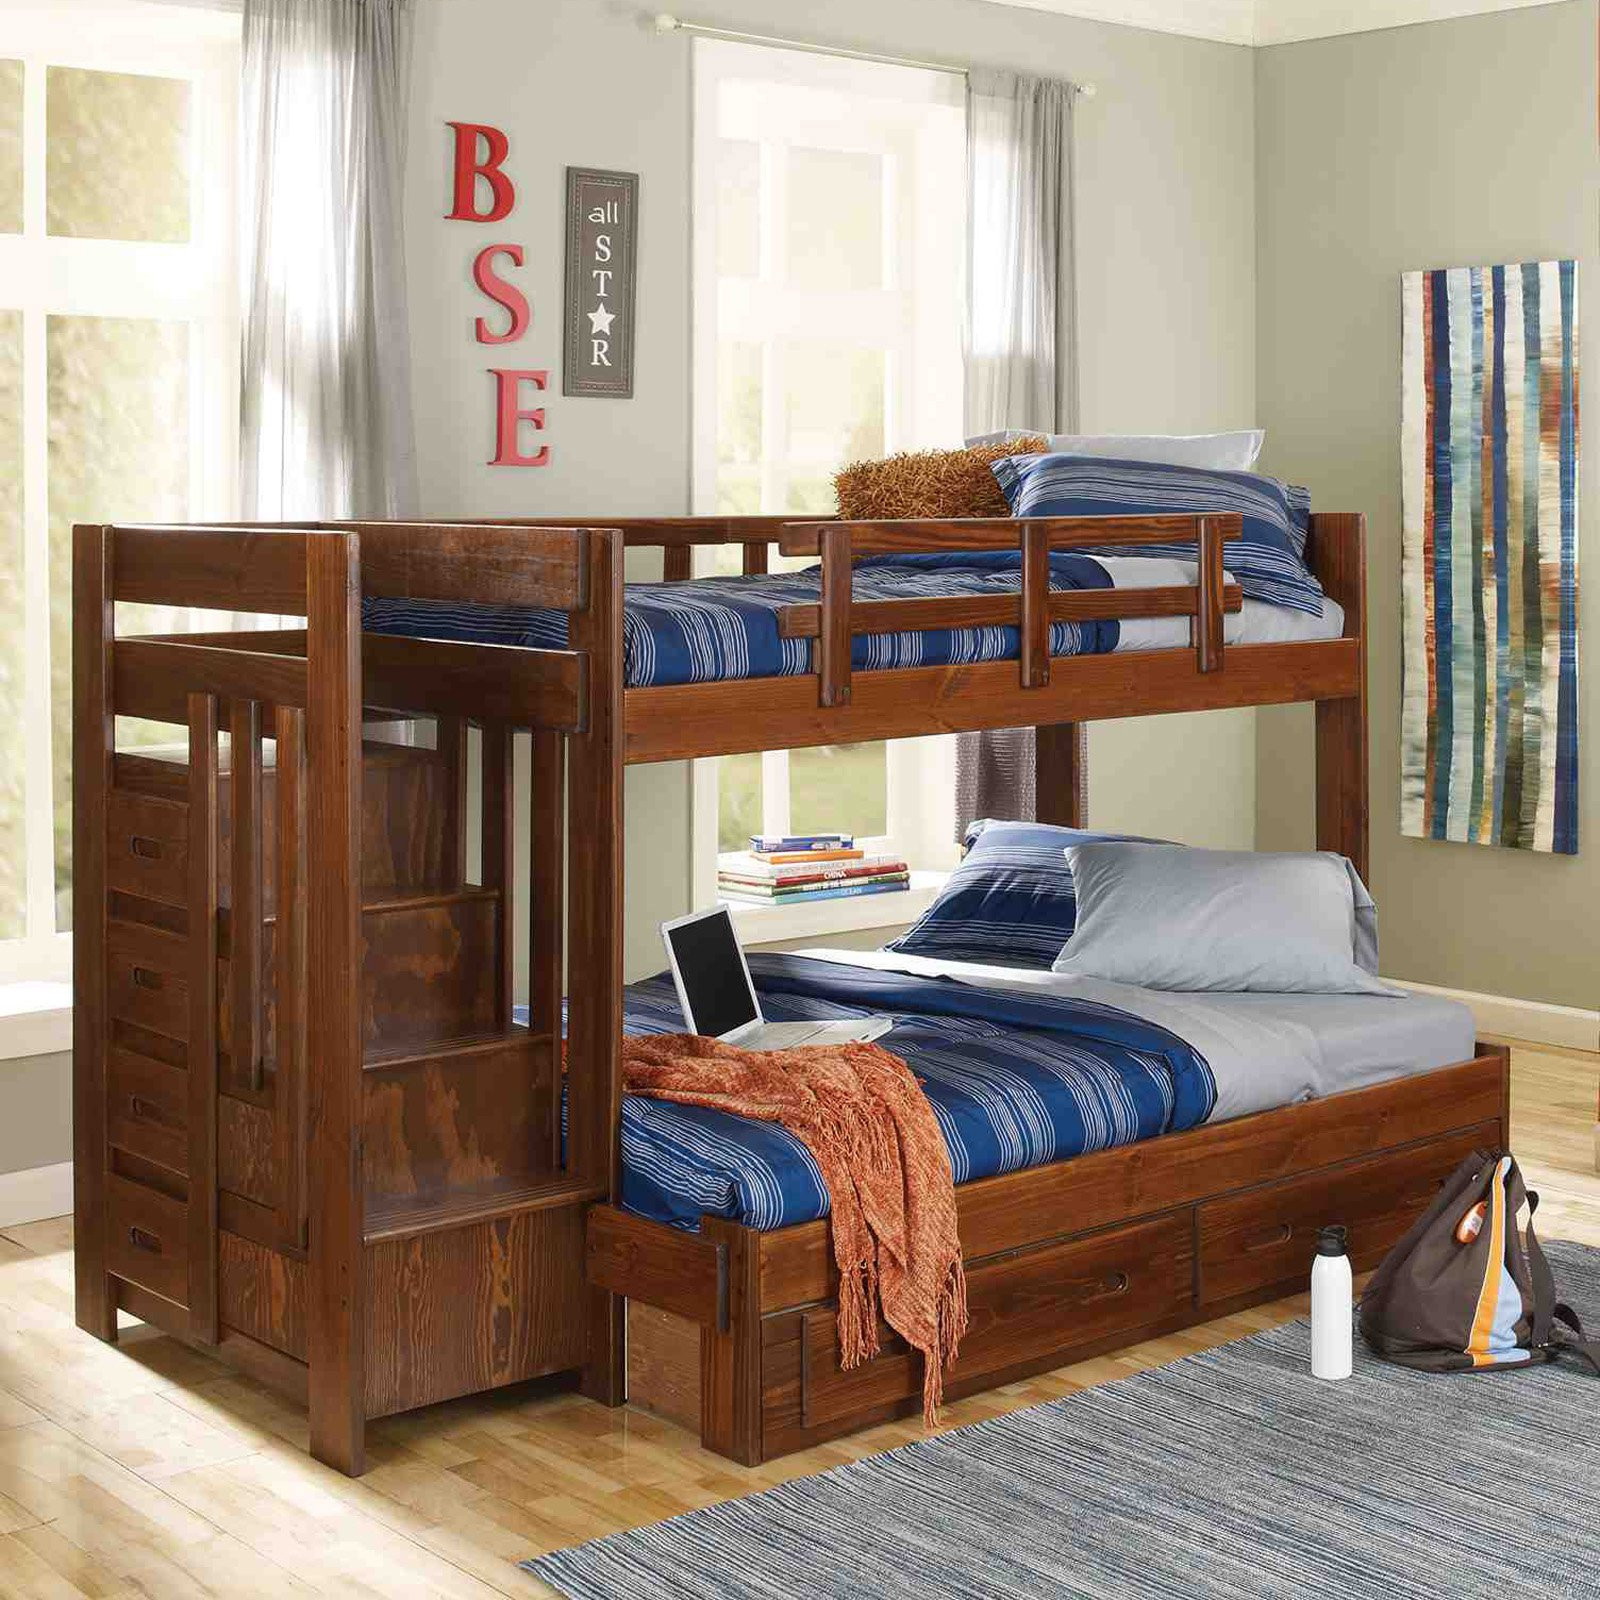 heartland hardwood flooring knoxville of woodcrest heartland twin over full reversible stair bunk bed within woodcrest heartland twin over full reversible stair bunk bed walmart com